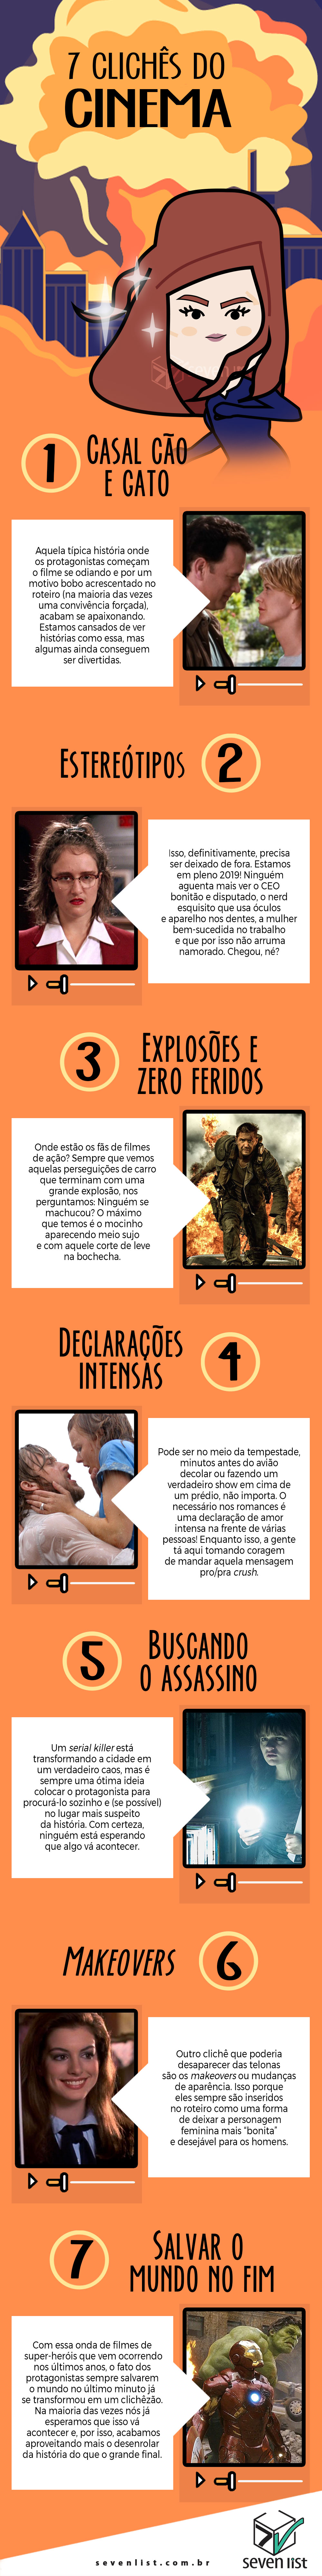 7 CLICHÊS DO CINEMA - SEVEN LIST